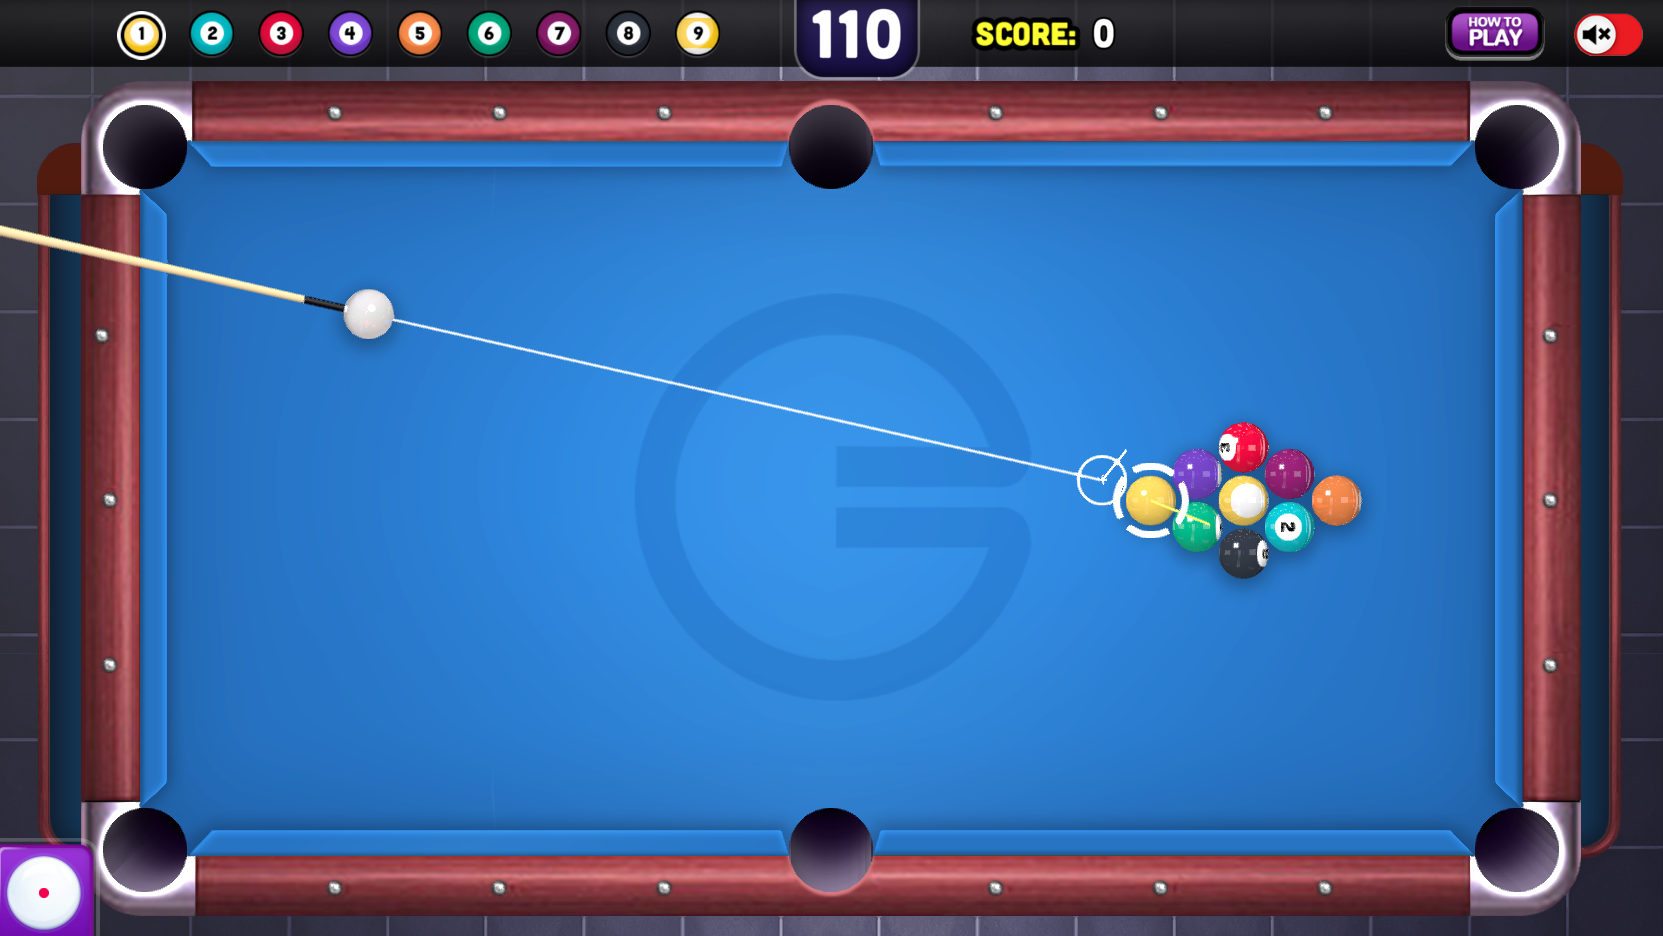 9 Ball Pool Rules Here S Everything You Need To Know Eazegames